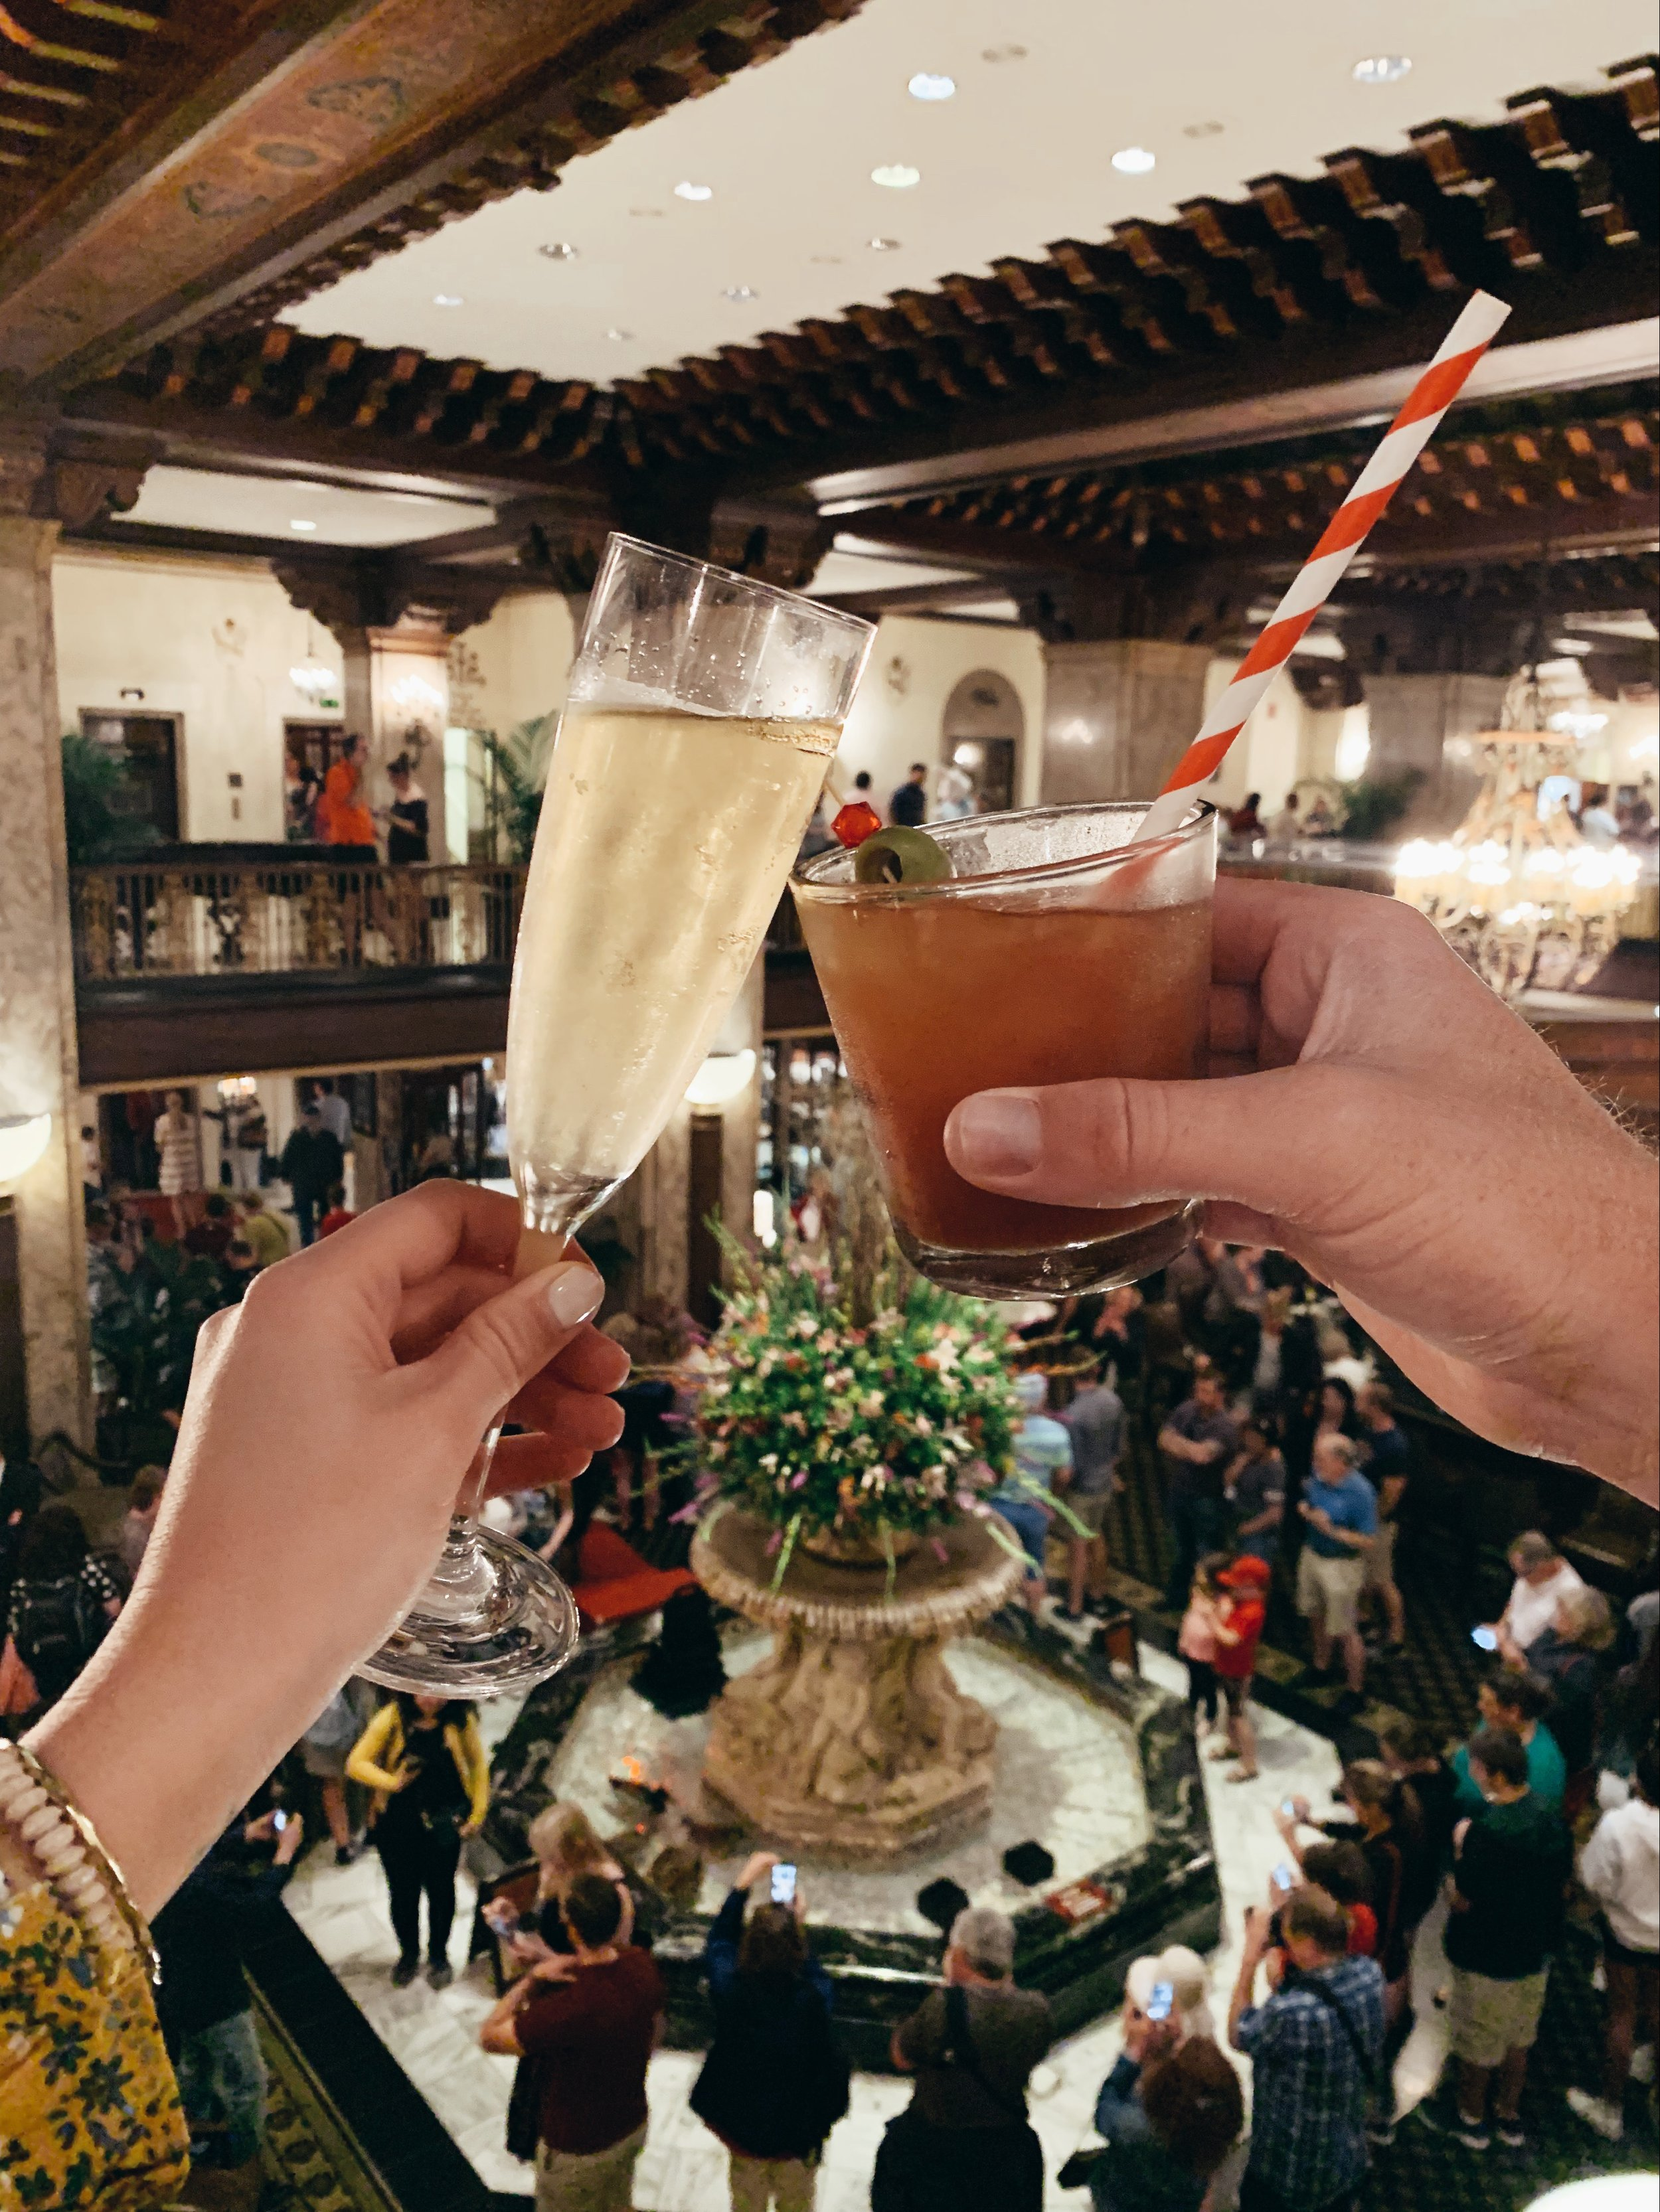 Cheers to Easter brunch at the Peabody